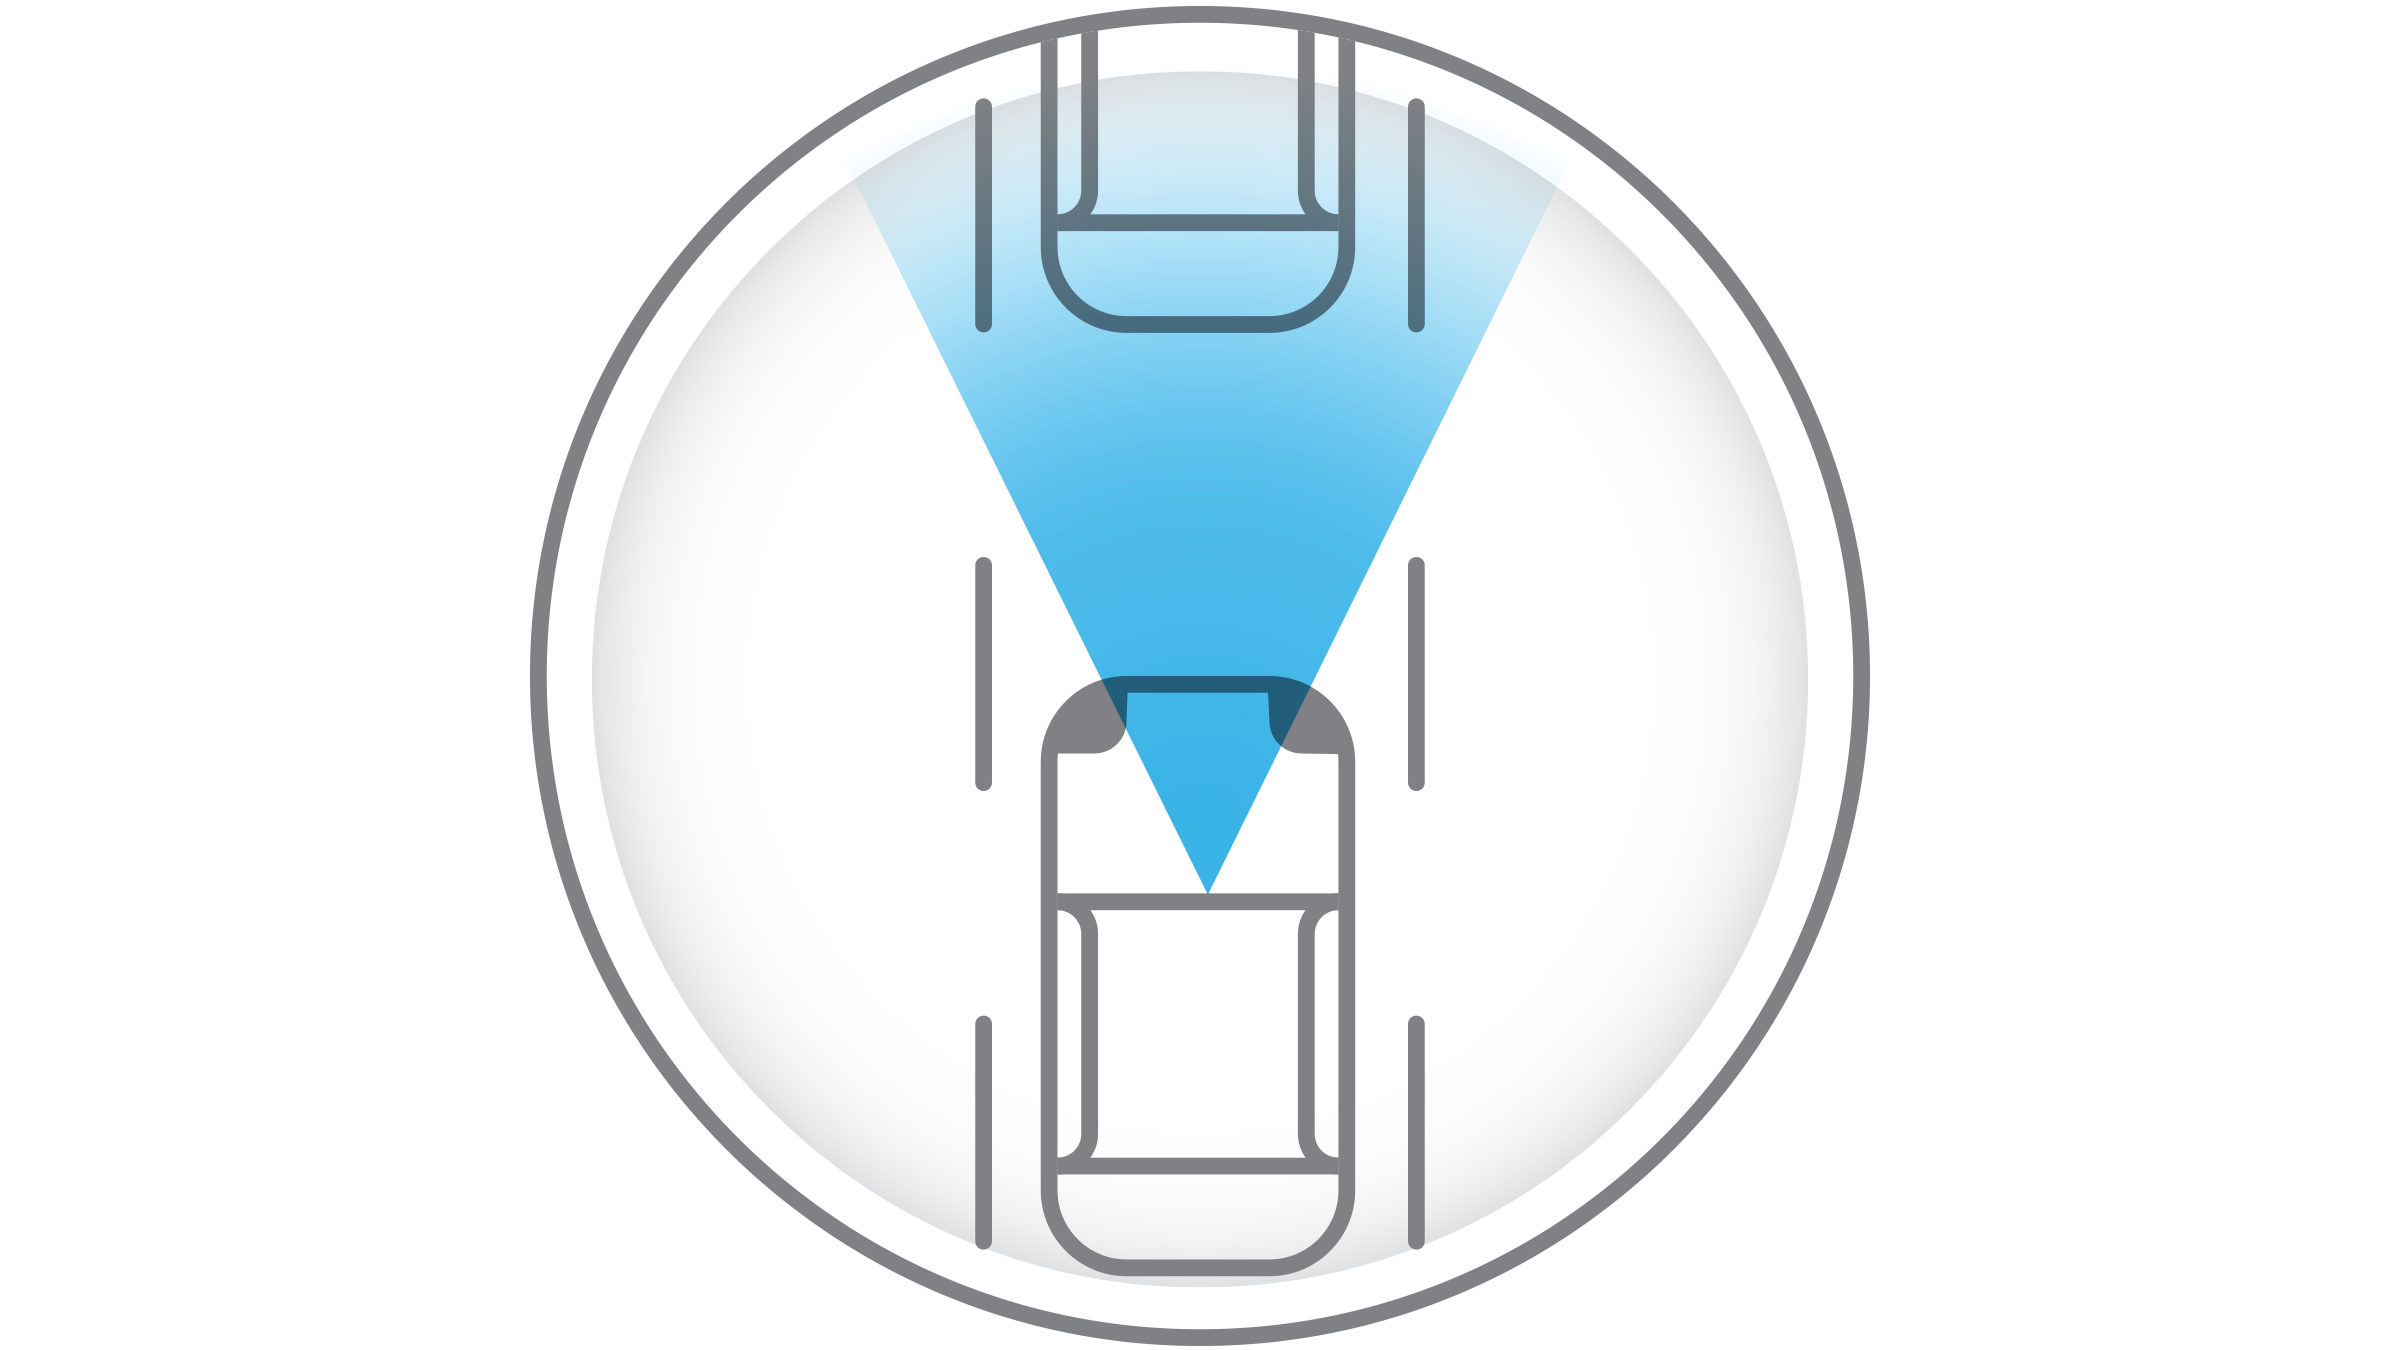 Automatic Emergency Braking Icon